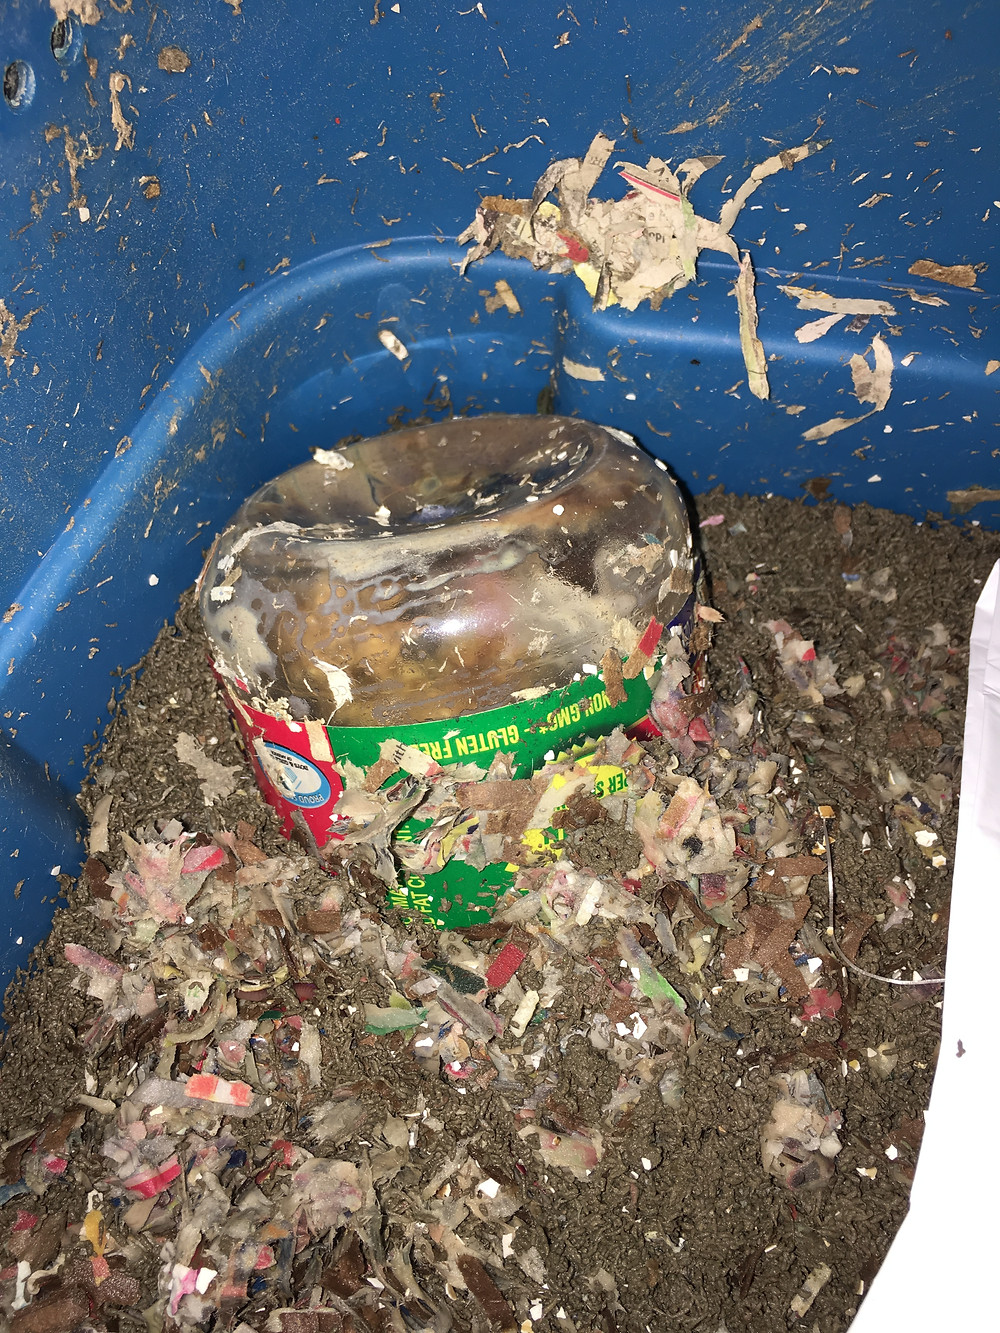 Peanut butter container in the worm bin for the worms to consume